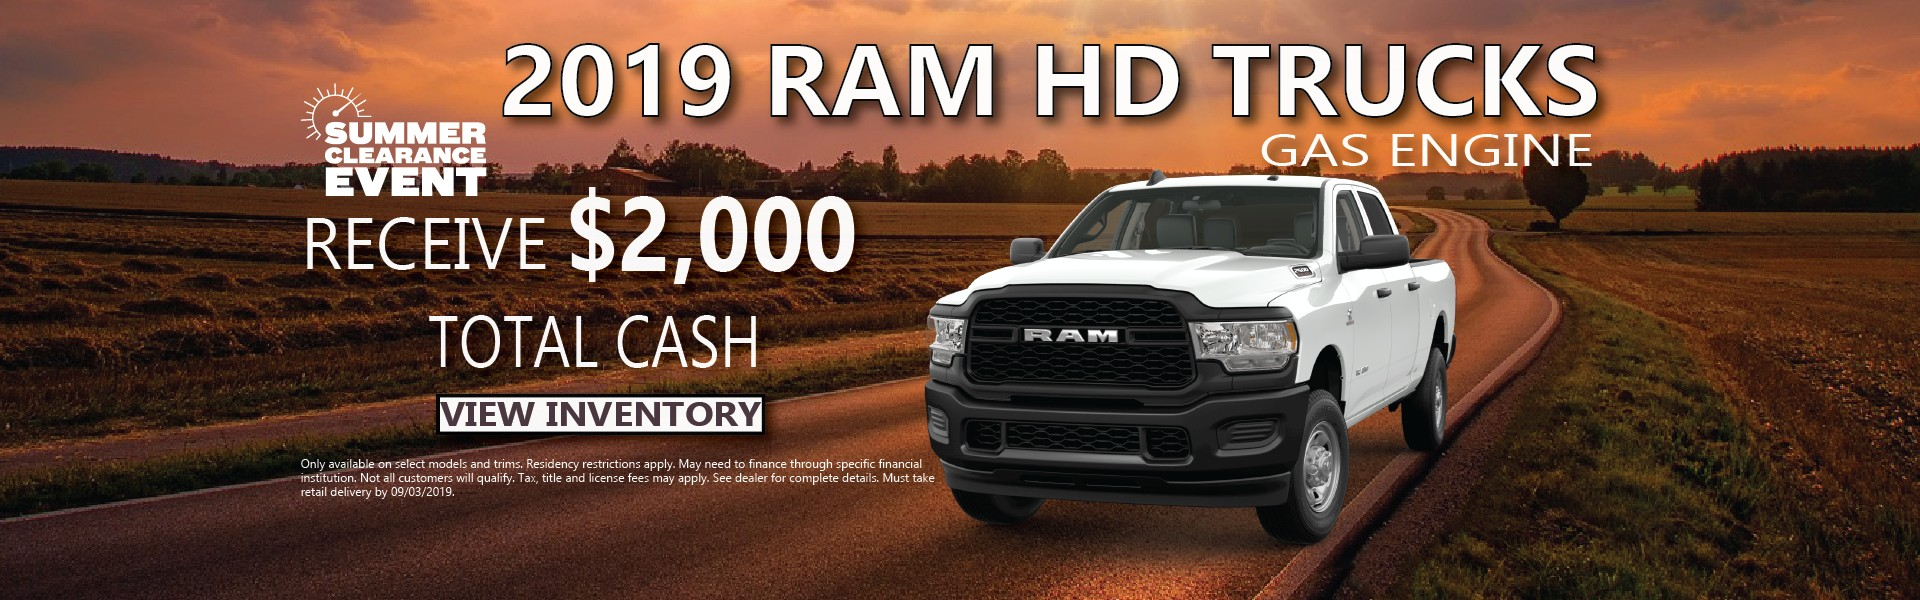 2019 HD Trucks Finance Offer